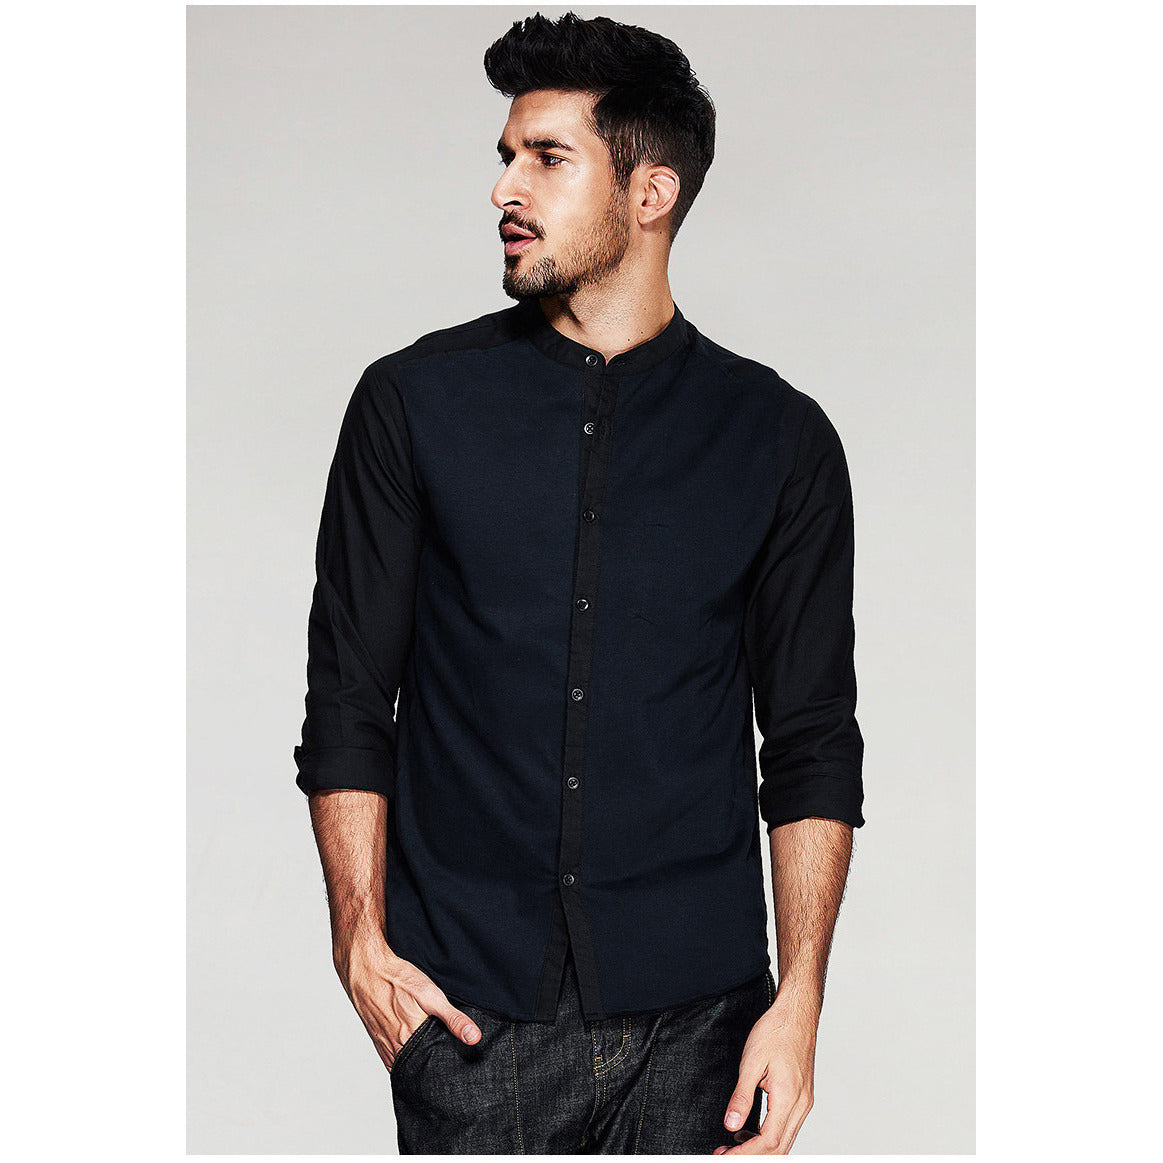 Alexander Black Shirt - Haberfasher